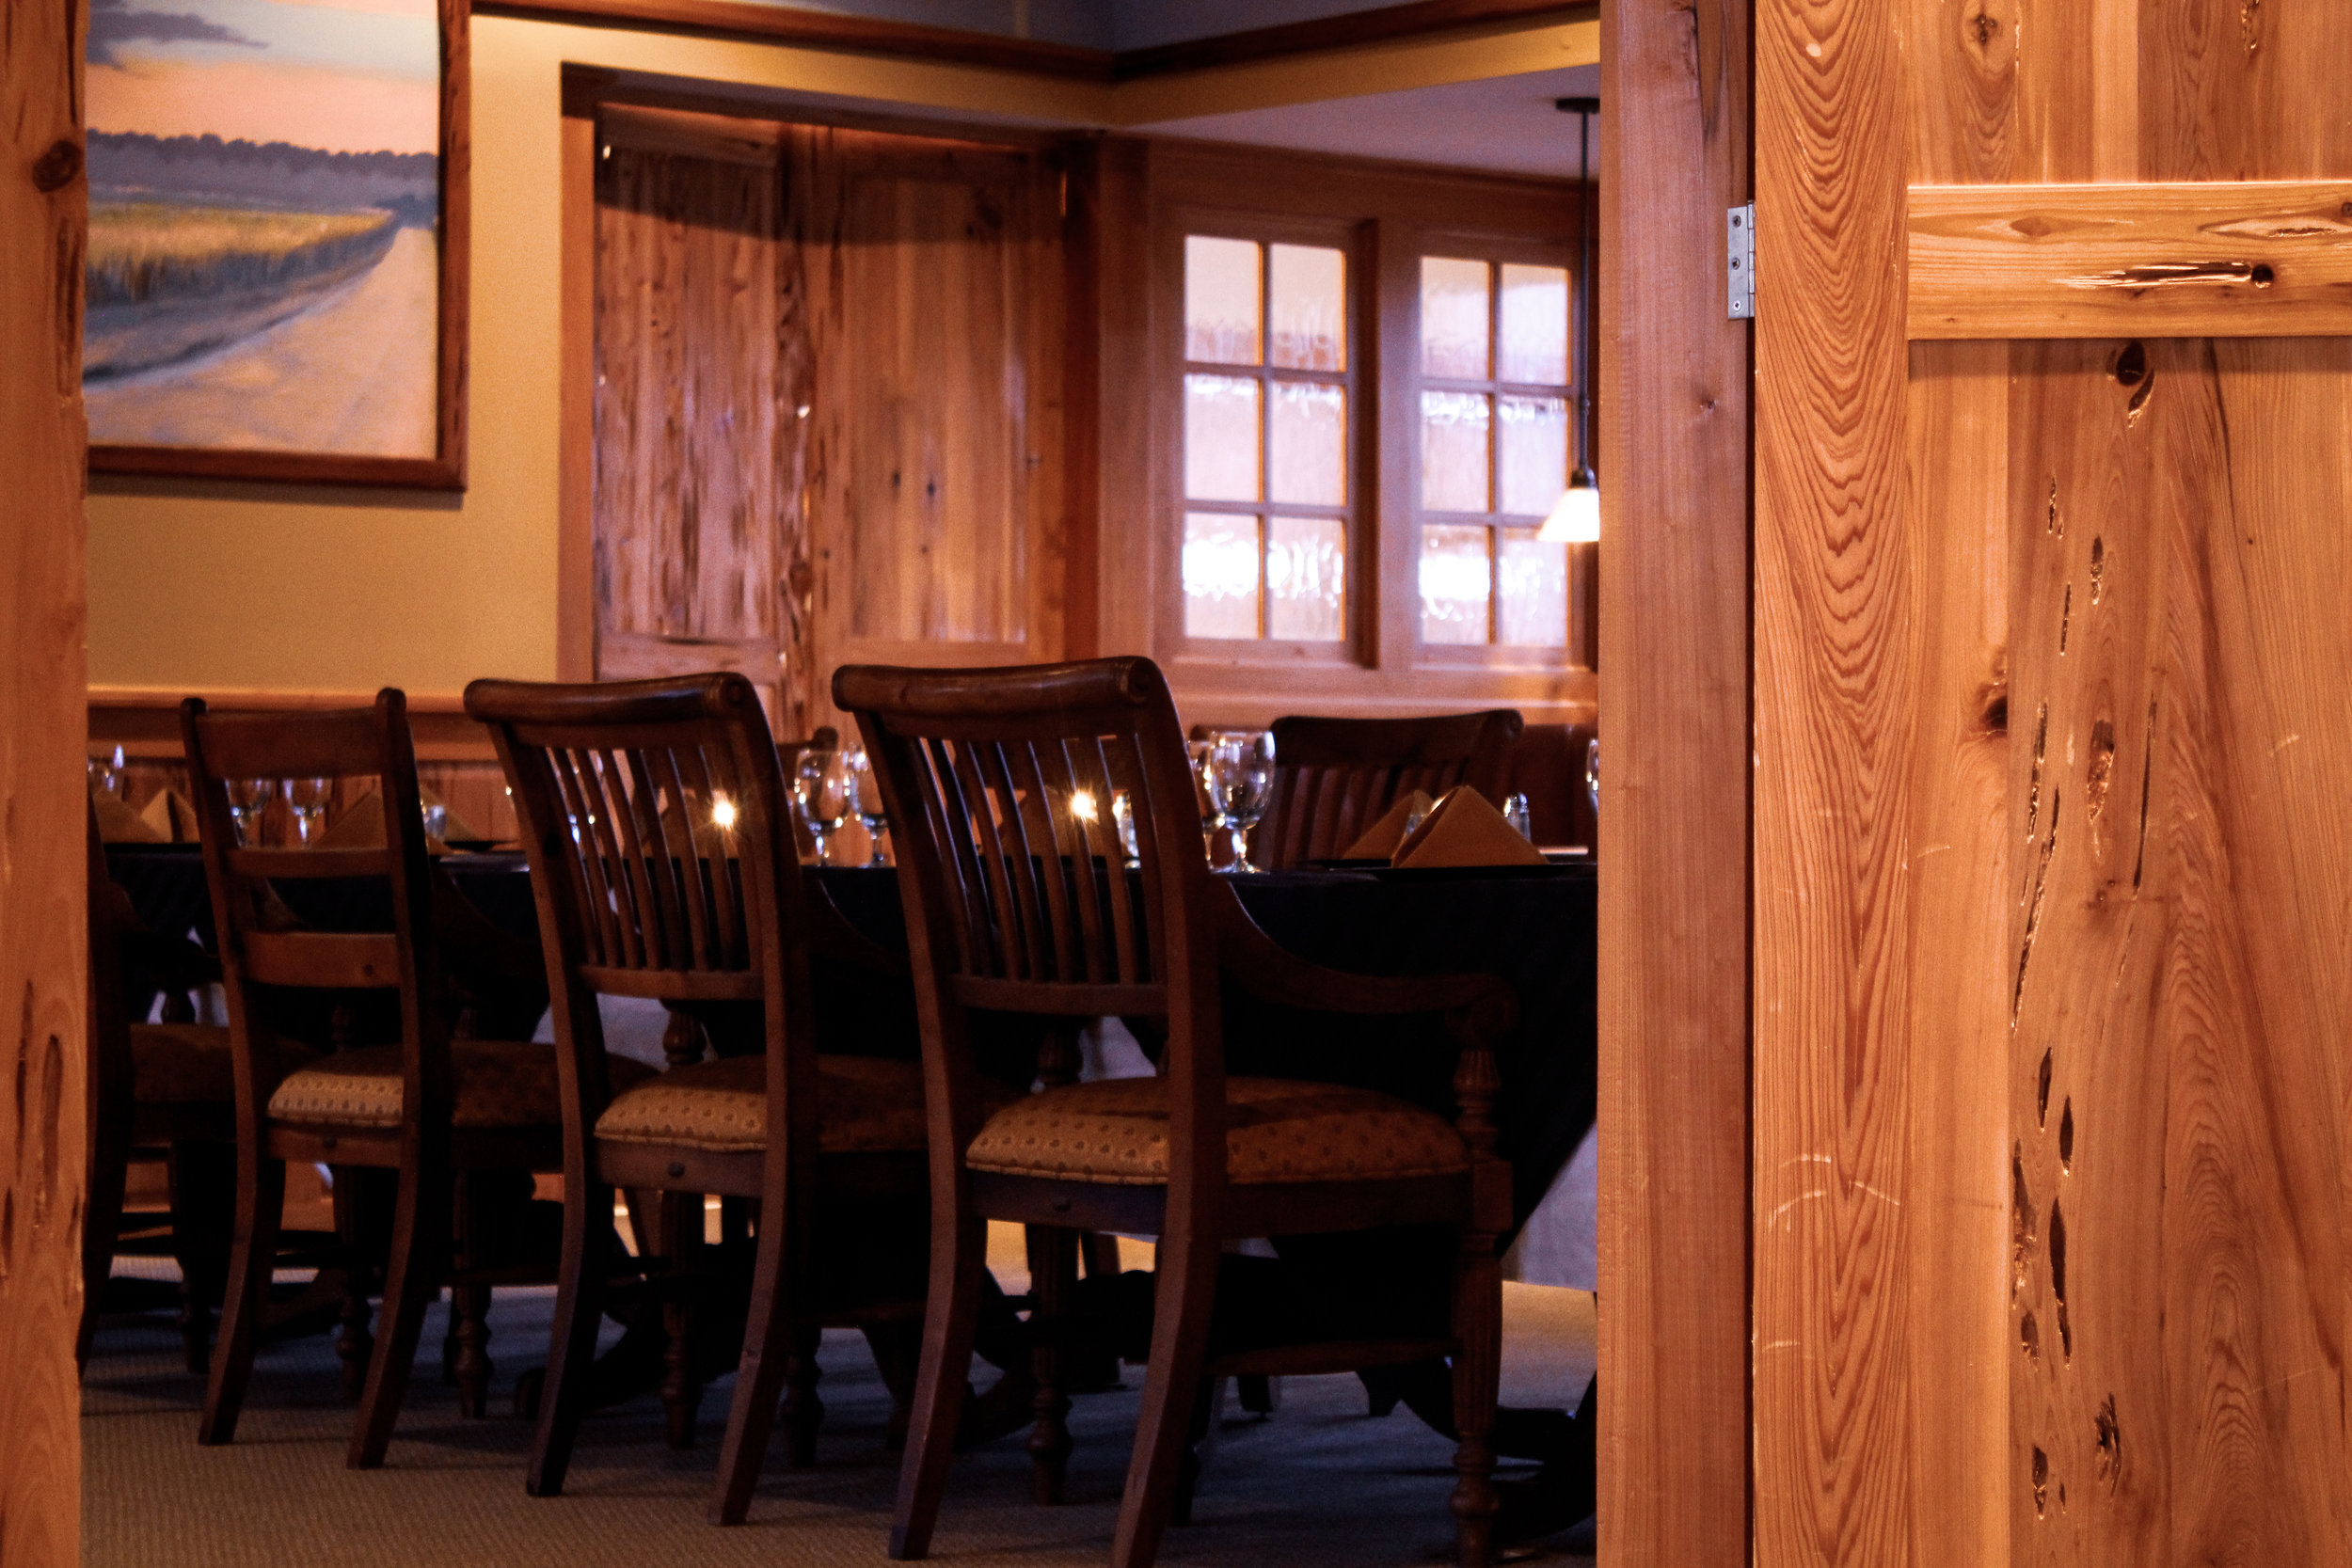 511 Rutledge - Event Venue - Middle Dining Room - Seated Dinner